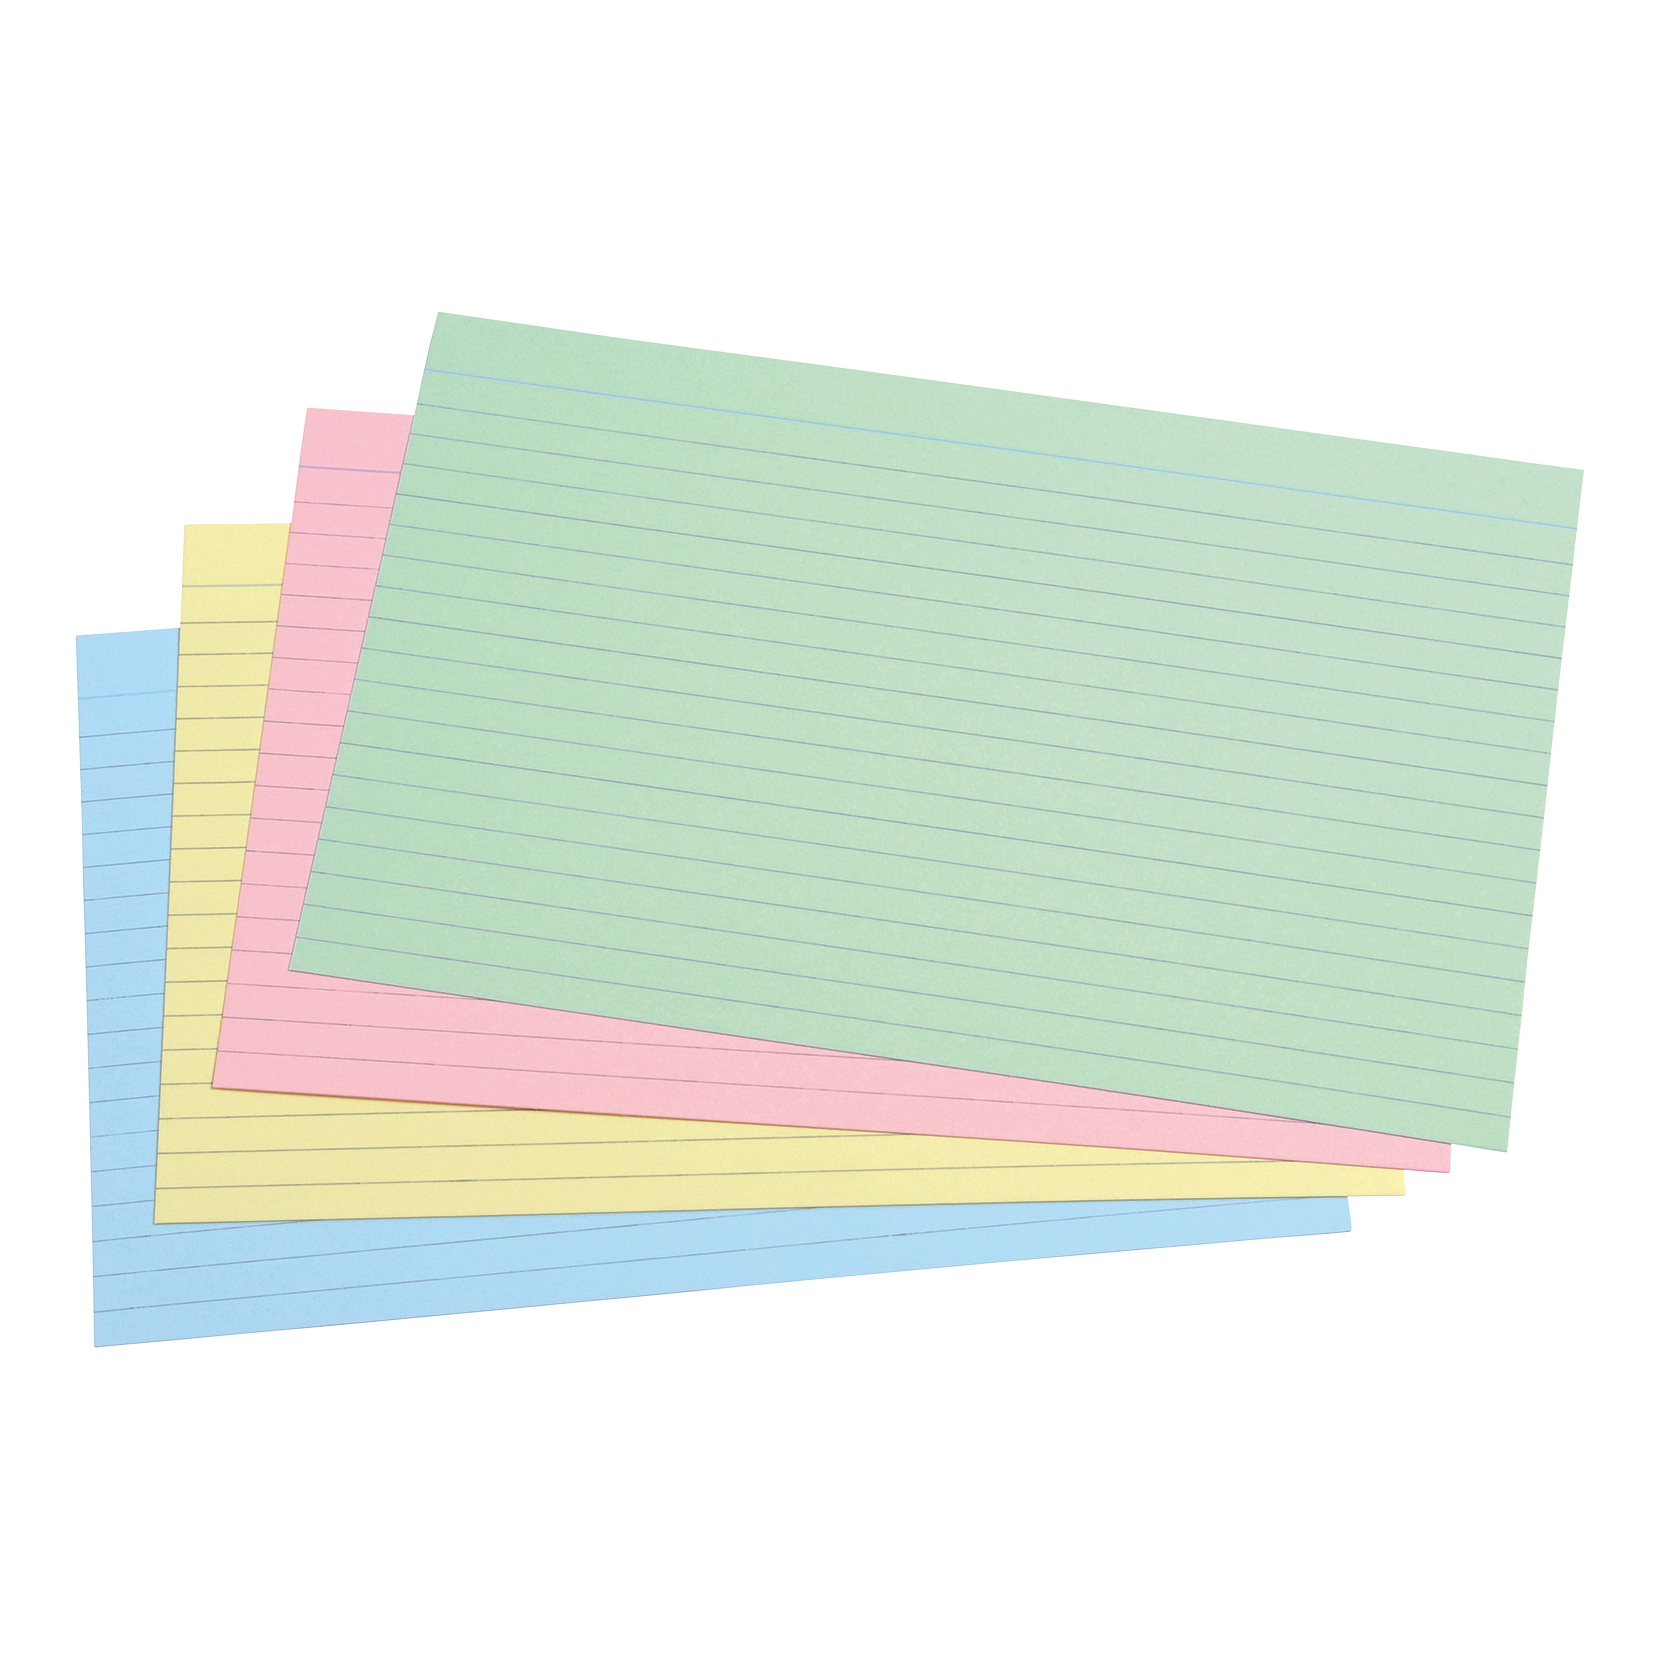 5 Star Office Record Cards Ruled Both Sides 8x5in 203x127mm Assorted Pack 100